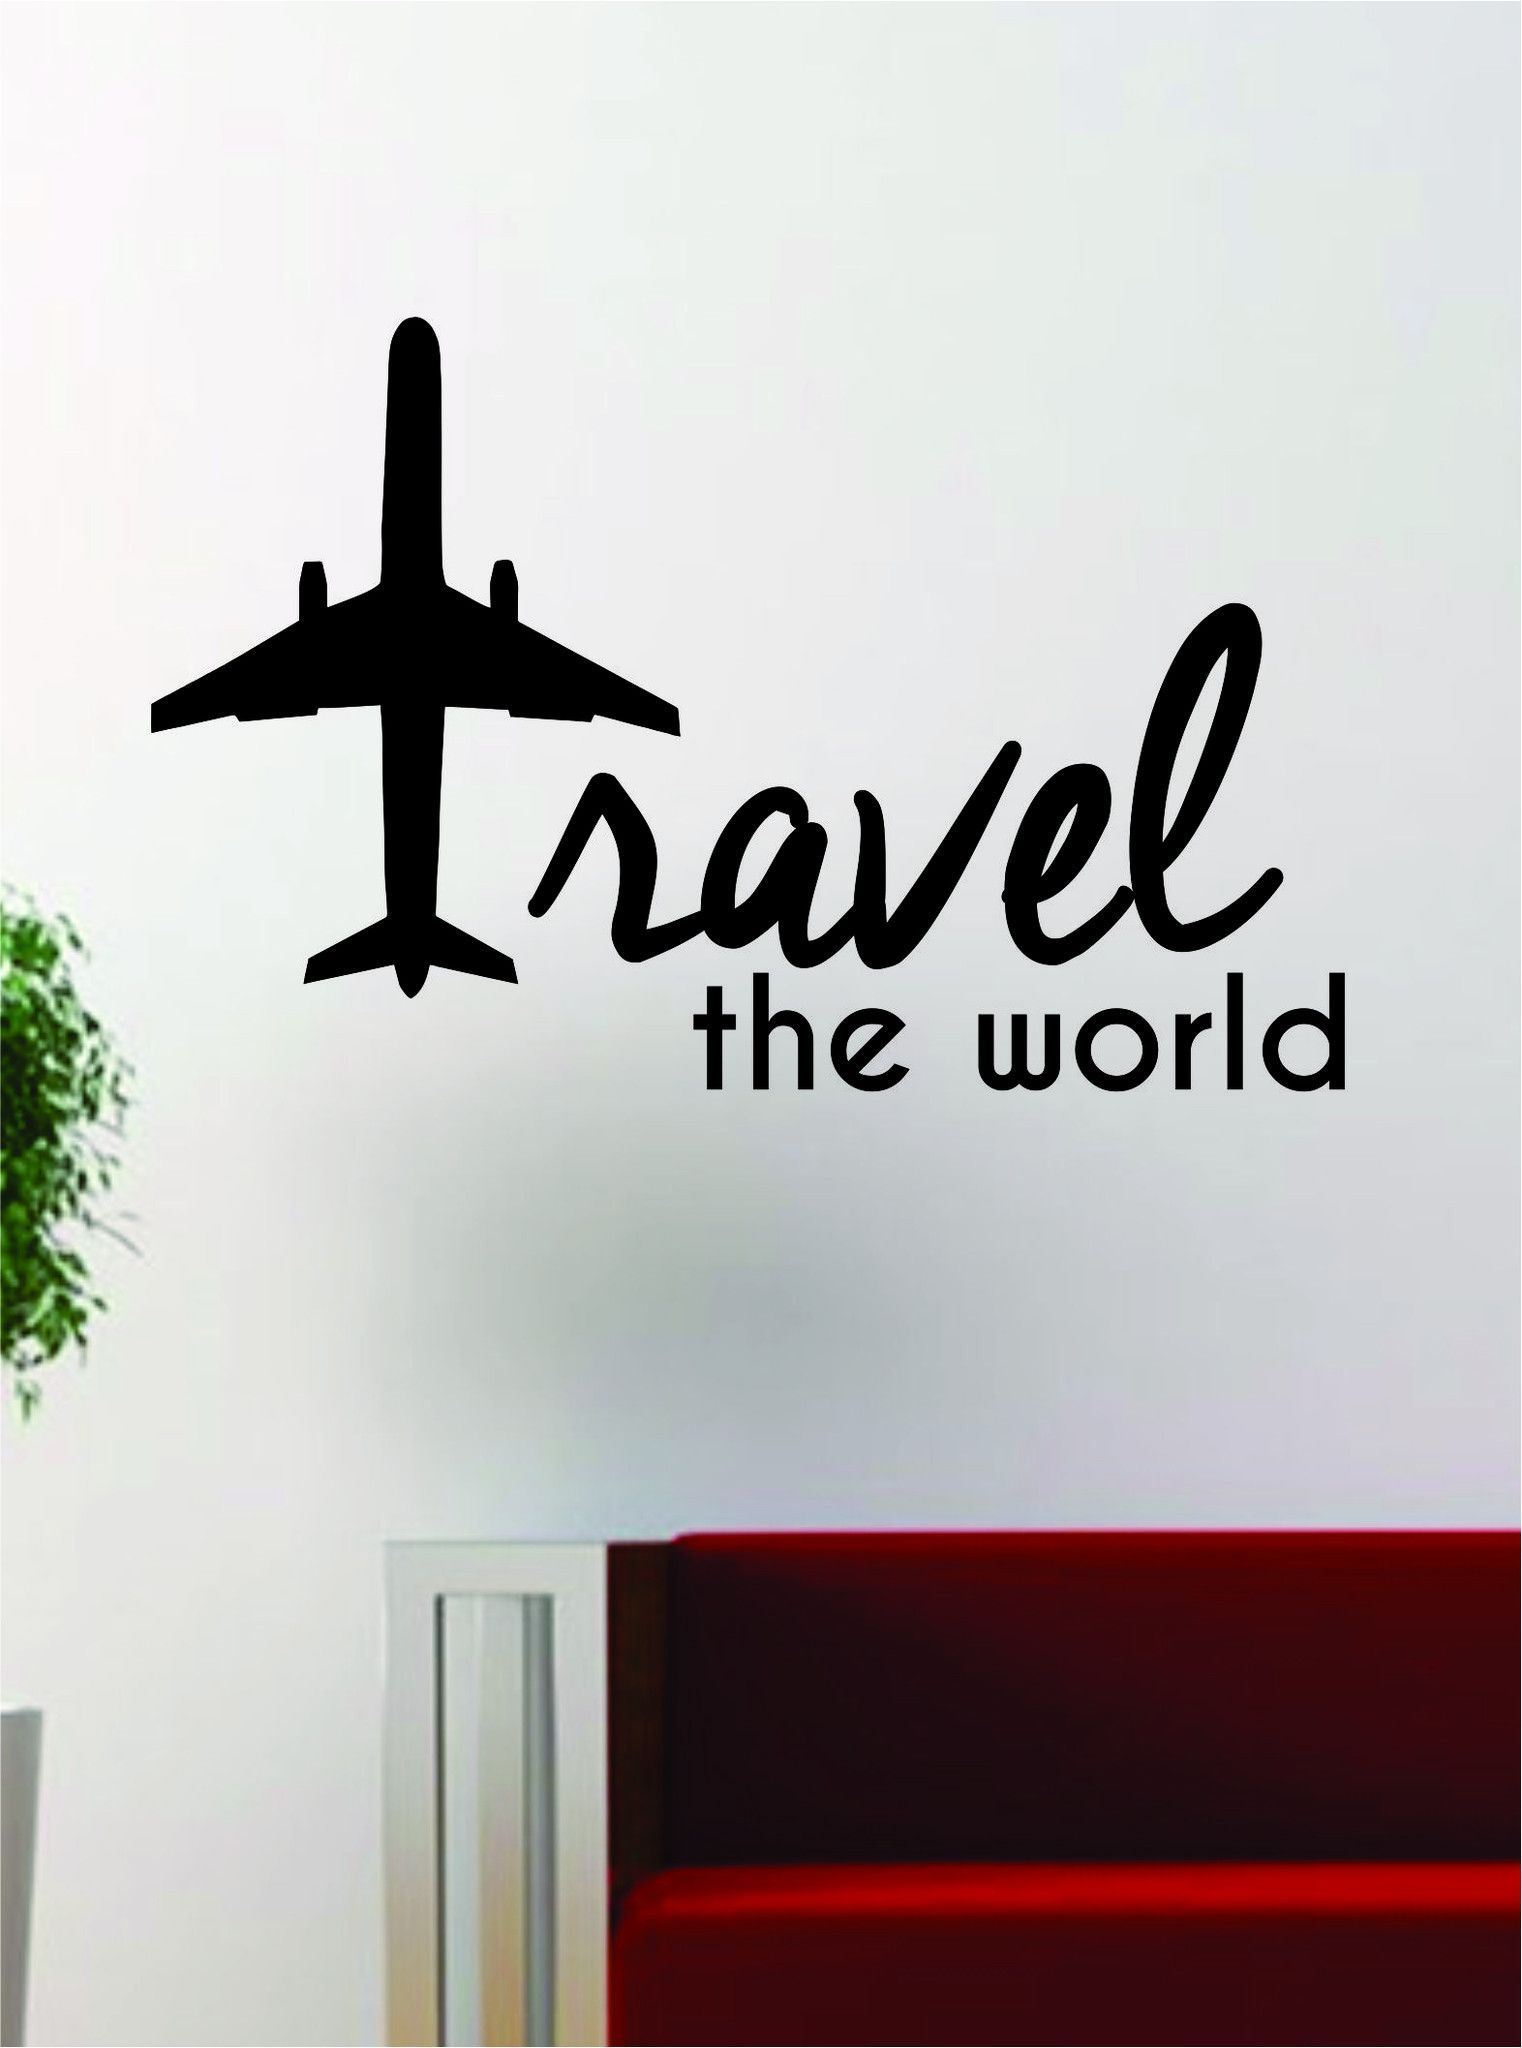 Wall decal new york letter frame cheap stickers world discount - Travel The World Airplane Quote Decal Sticker Wall Vinyl Decor Art Adventure